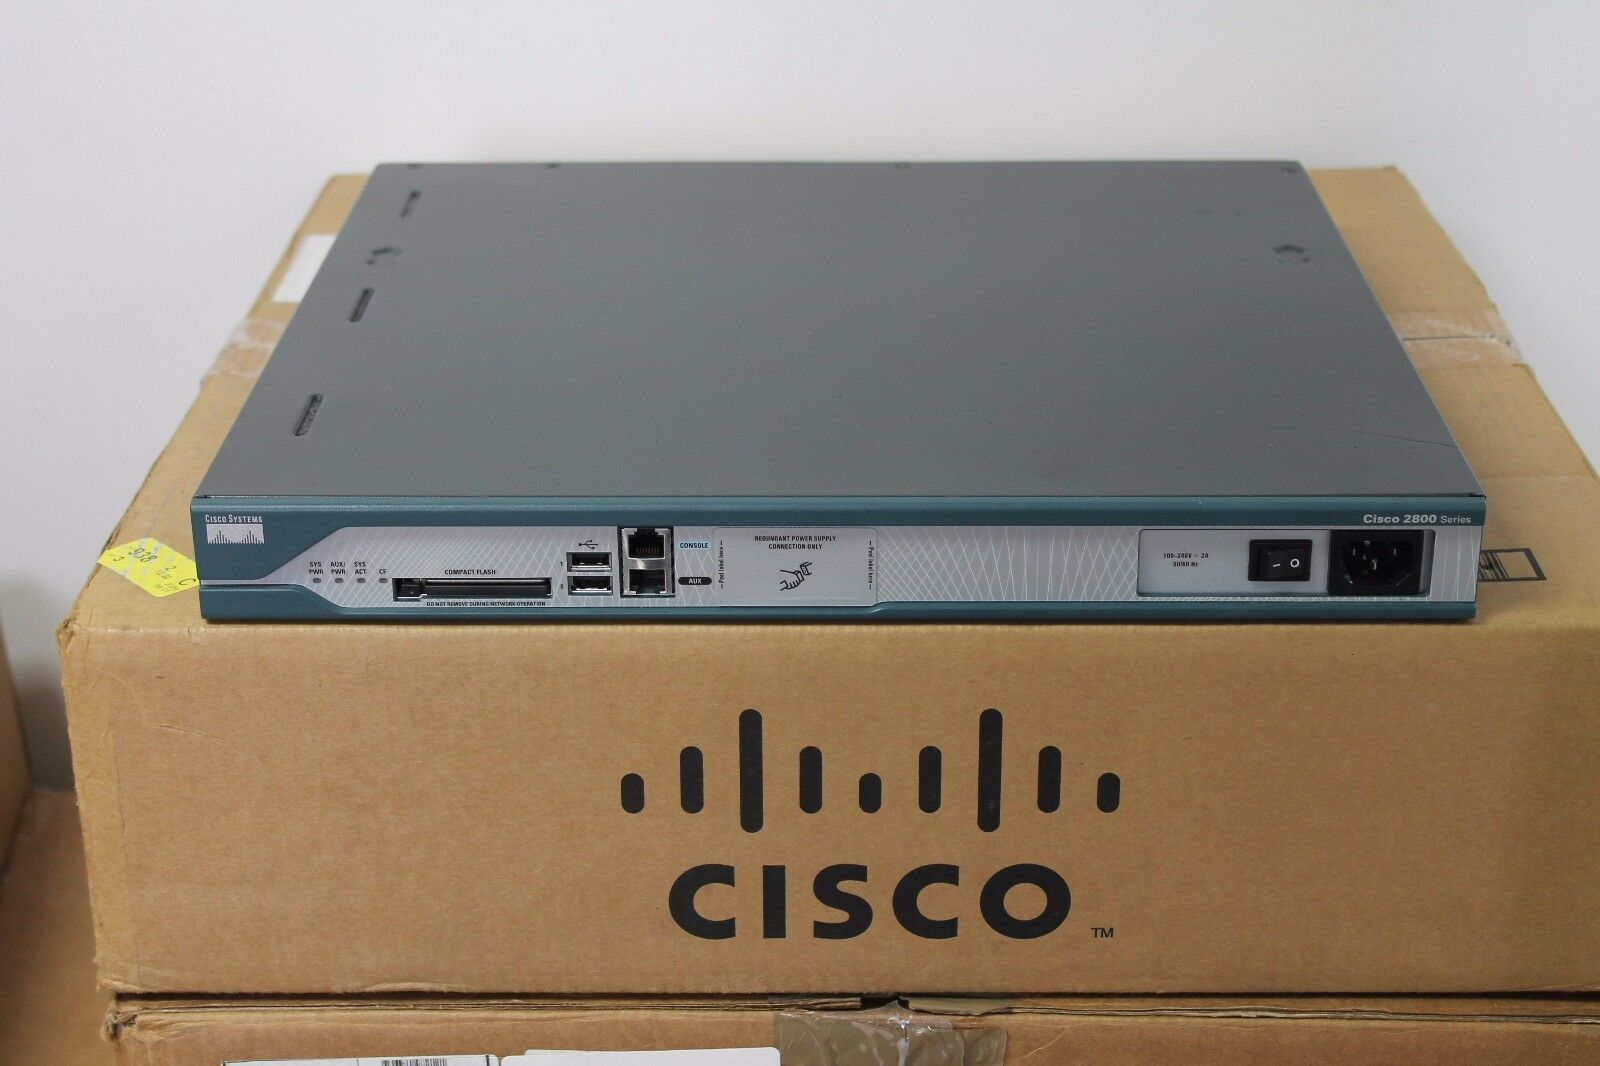 Cisco 2811 Router IOS 15 1(3)T CME 8 5 CCENT CCNA CCVP CCIE CCSP LAB  512D/256F | Shopping Bin - Search eBay faster